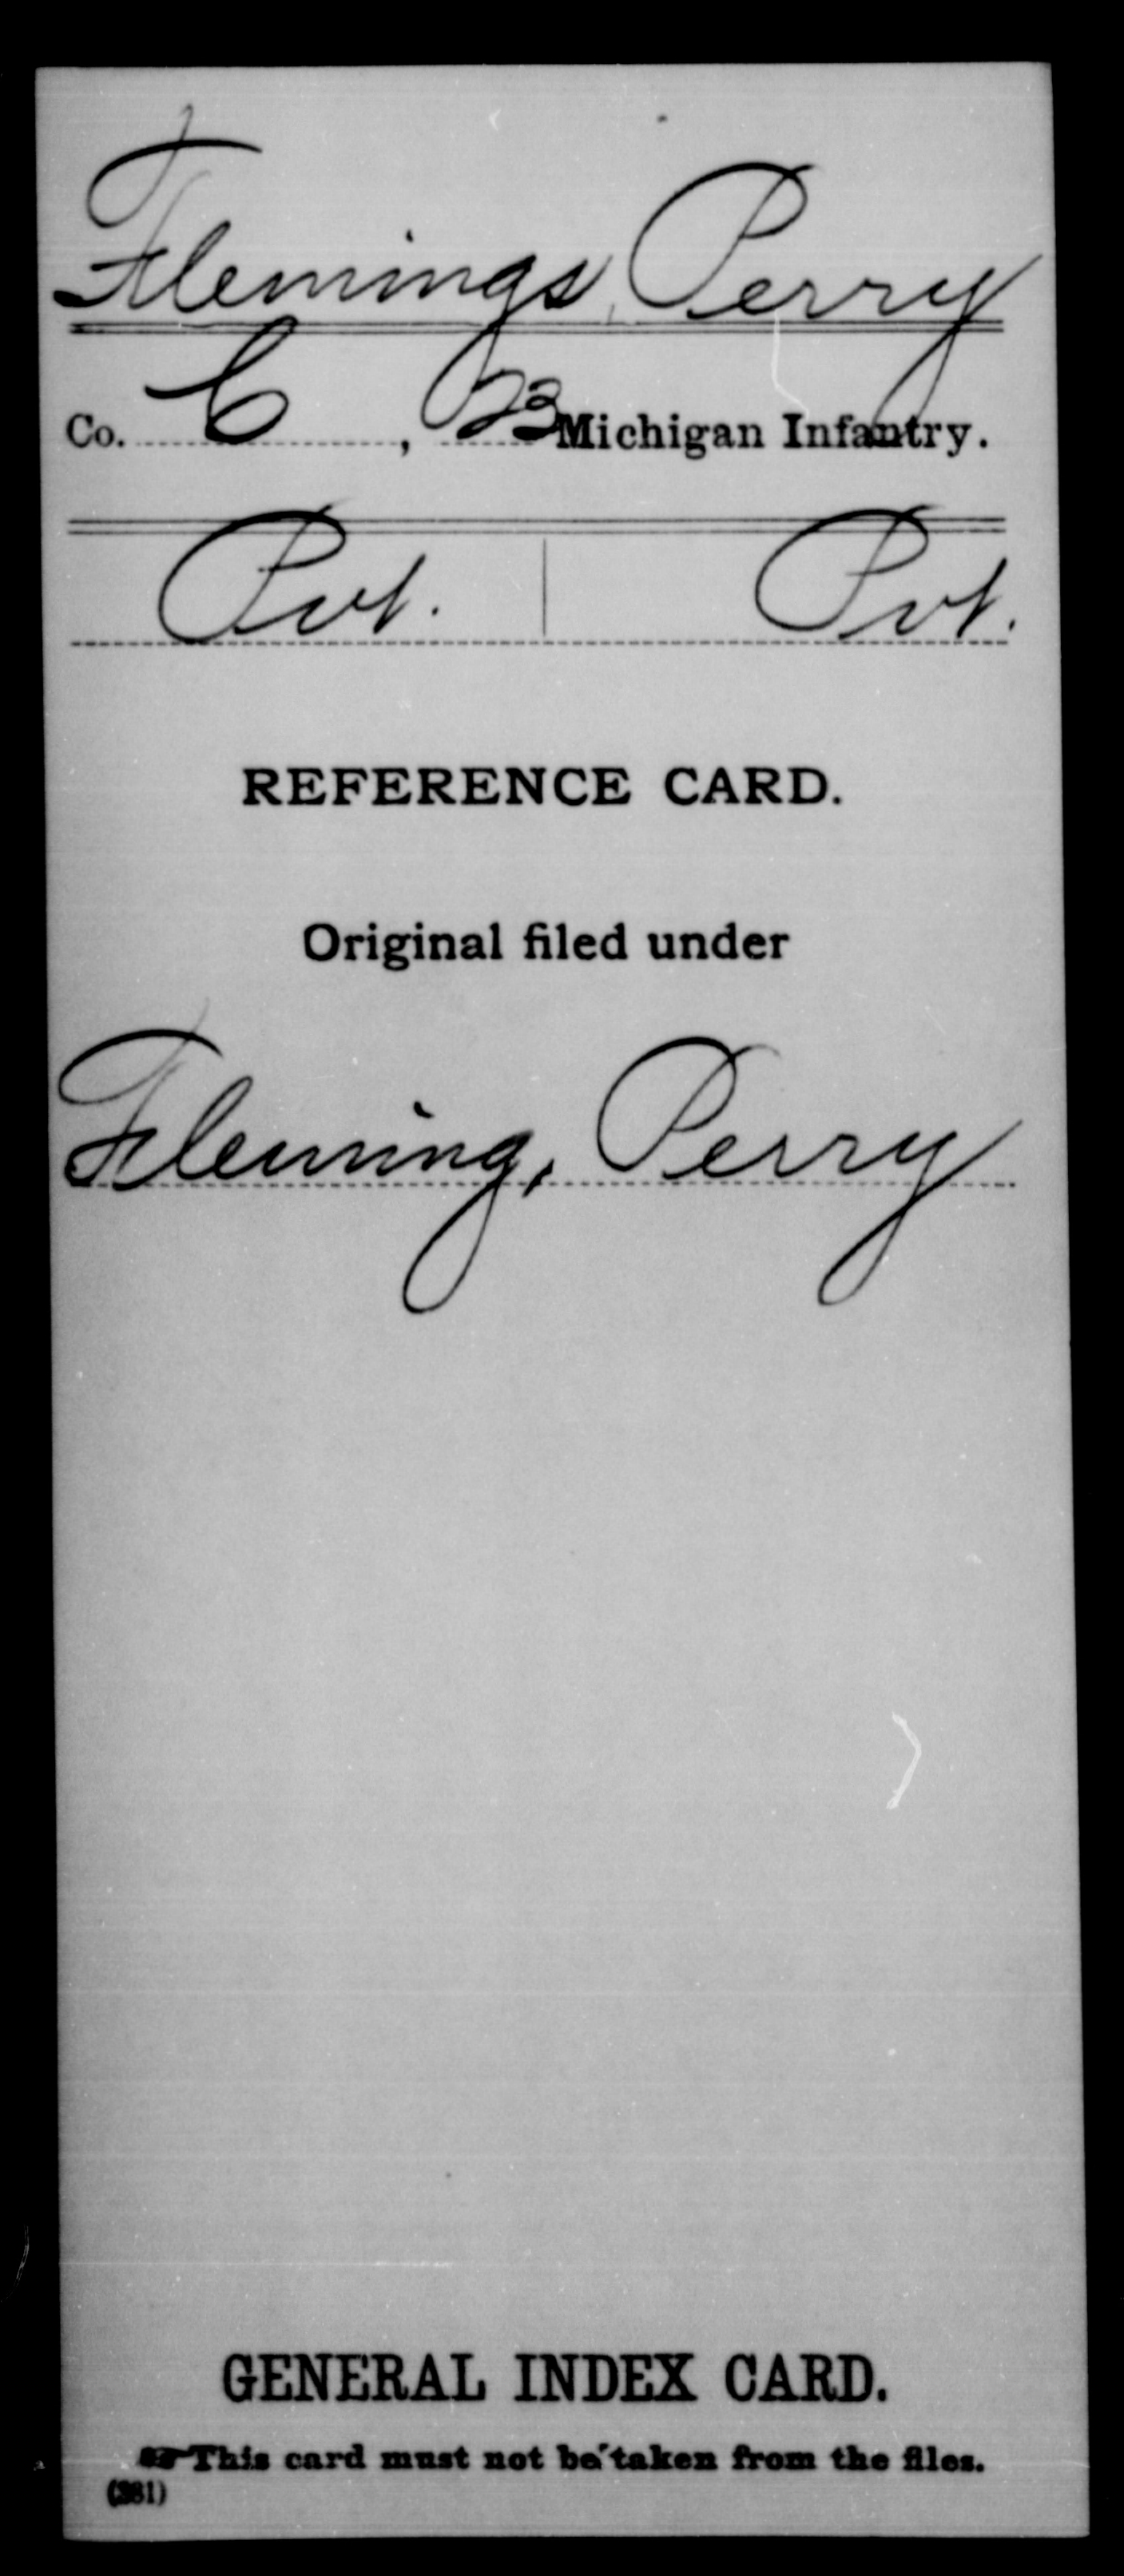 Flemings, Perry - Unit: 23rd Infantry, Company: C - Enlistment Rank: Pvt, Discharge Rank: Pvt